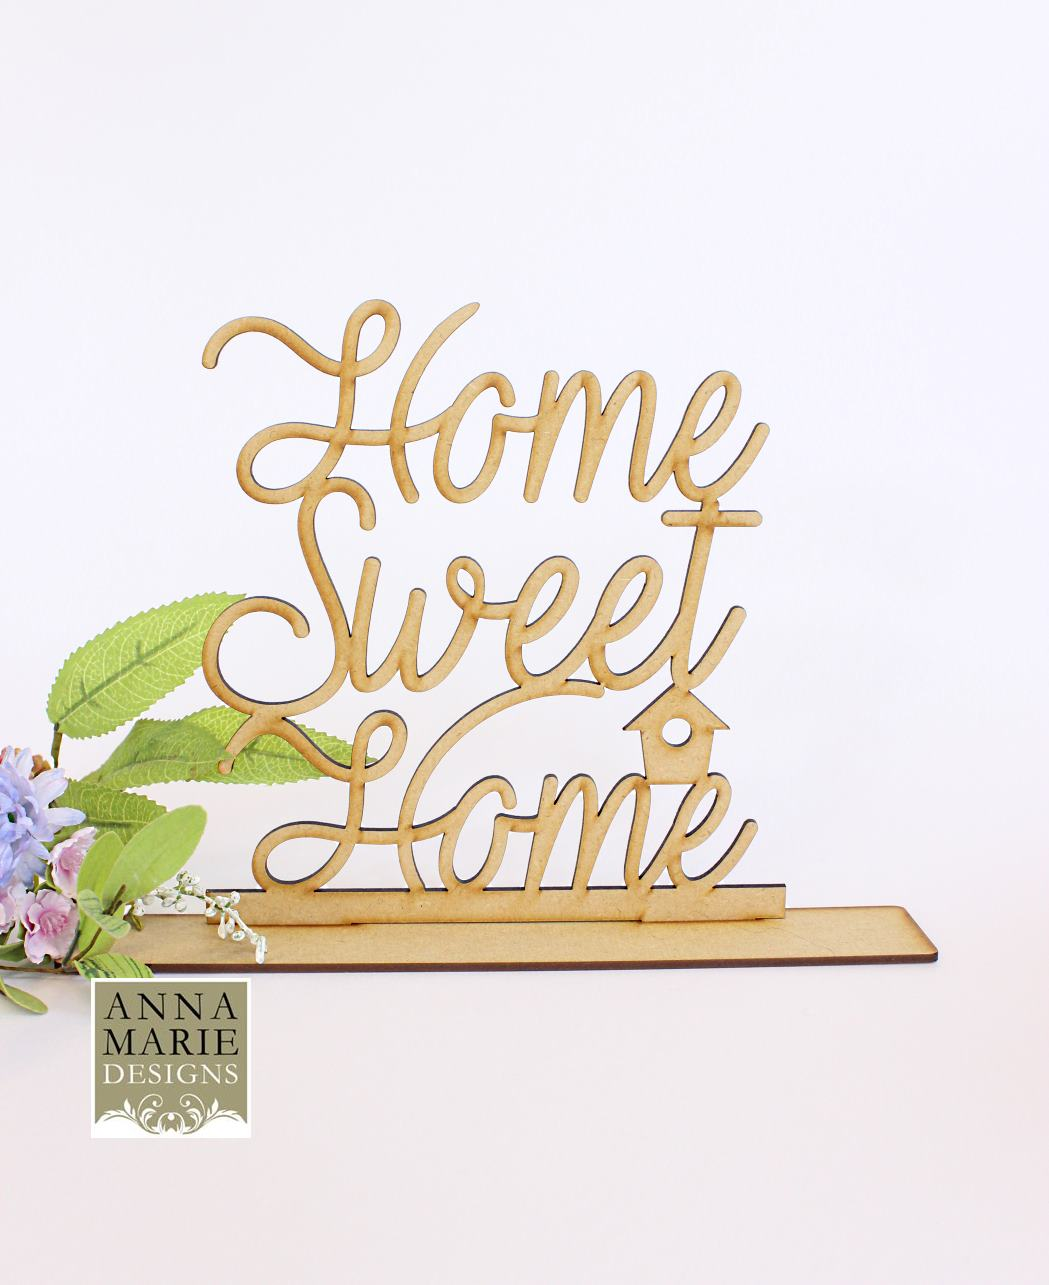 Mdf stand up word home sweet home anna marie designs - Home sweet home designs ...